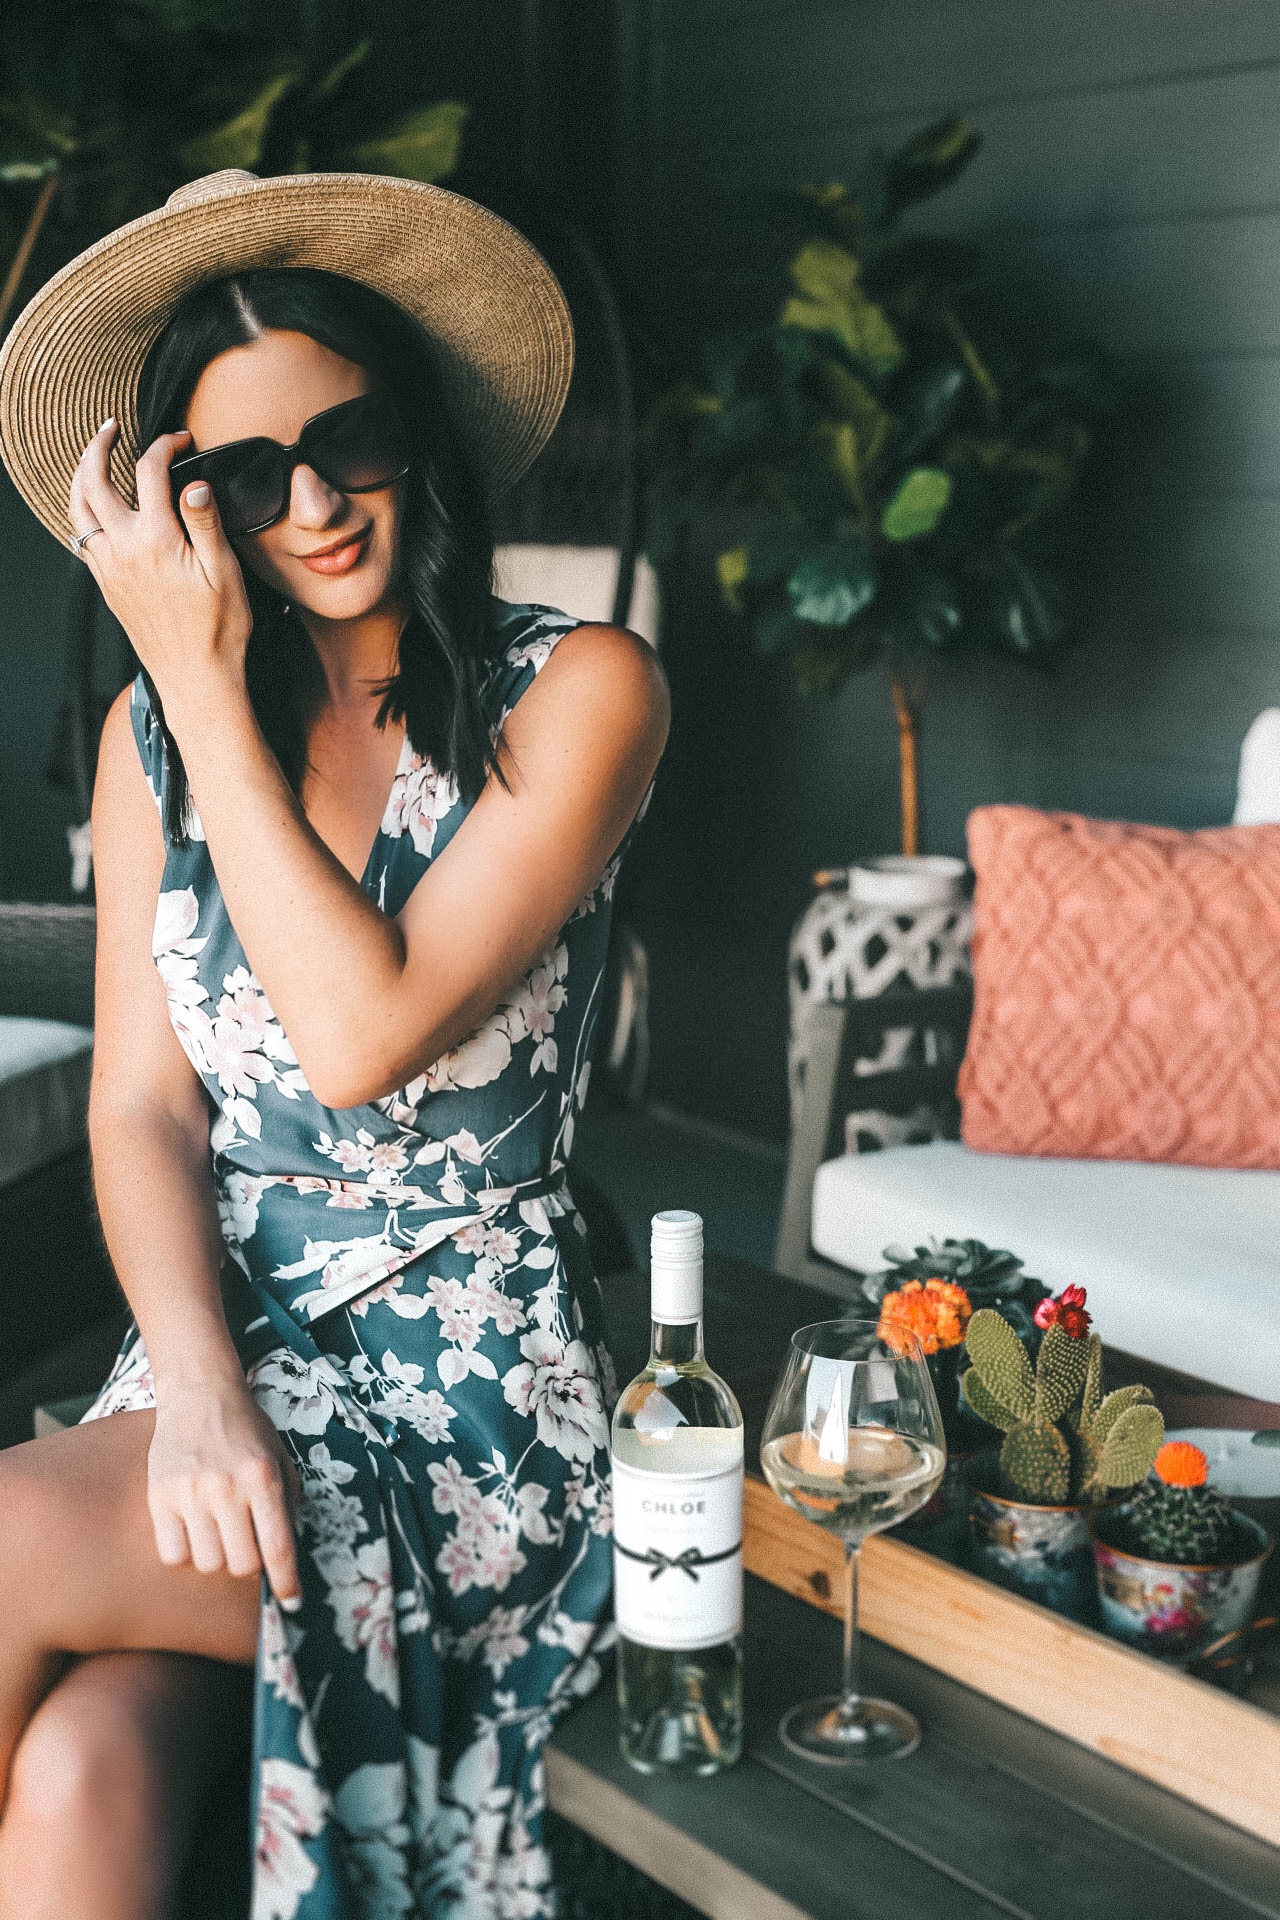 Celebrating Women in Film with Chloe Wine Collection by popular Austin life and style blog, Dressed to Kill: image of a woman sitting on her outdoor coffee table next to a bottle of Chloe pinot grigio wine and an empty wine glass.